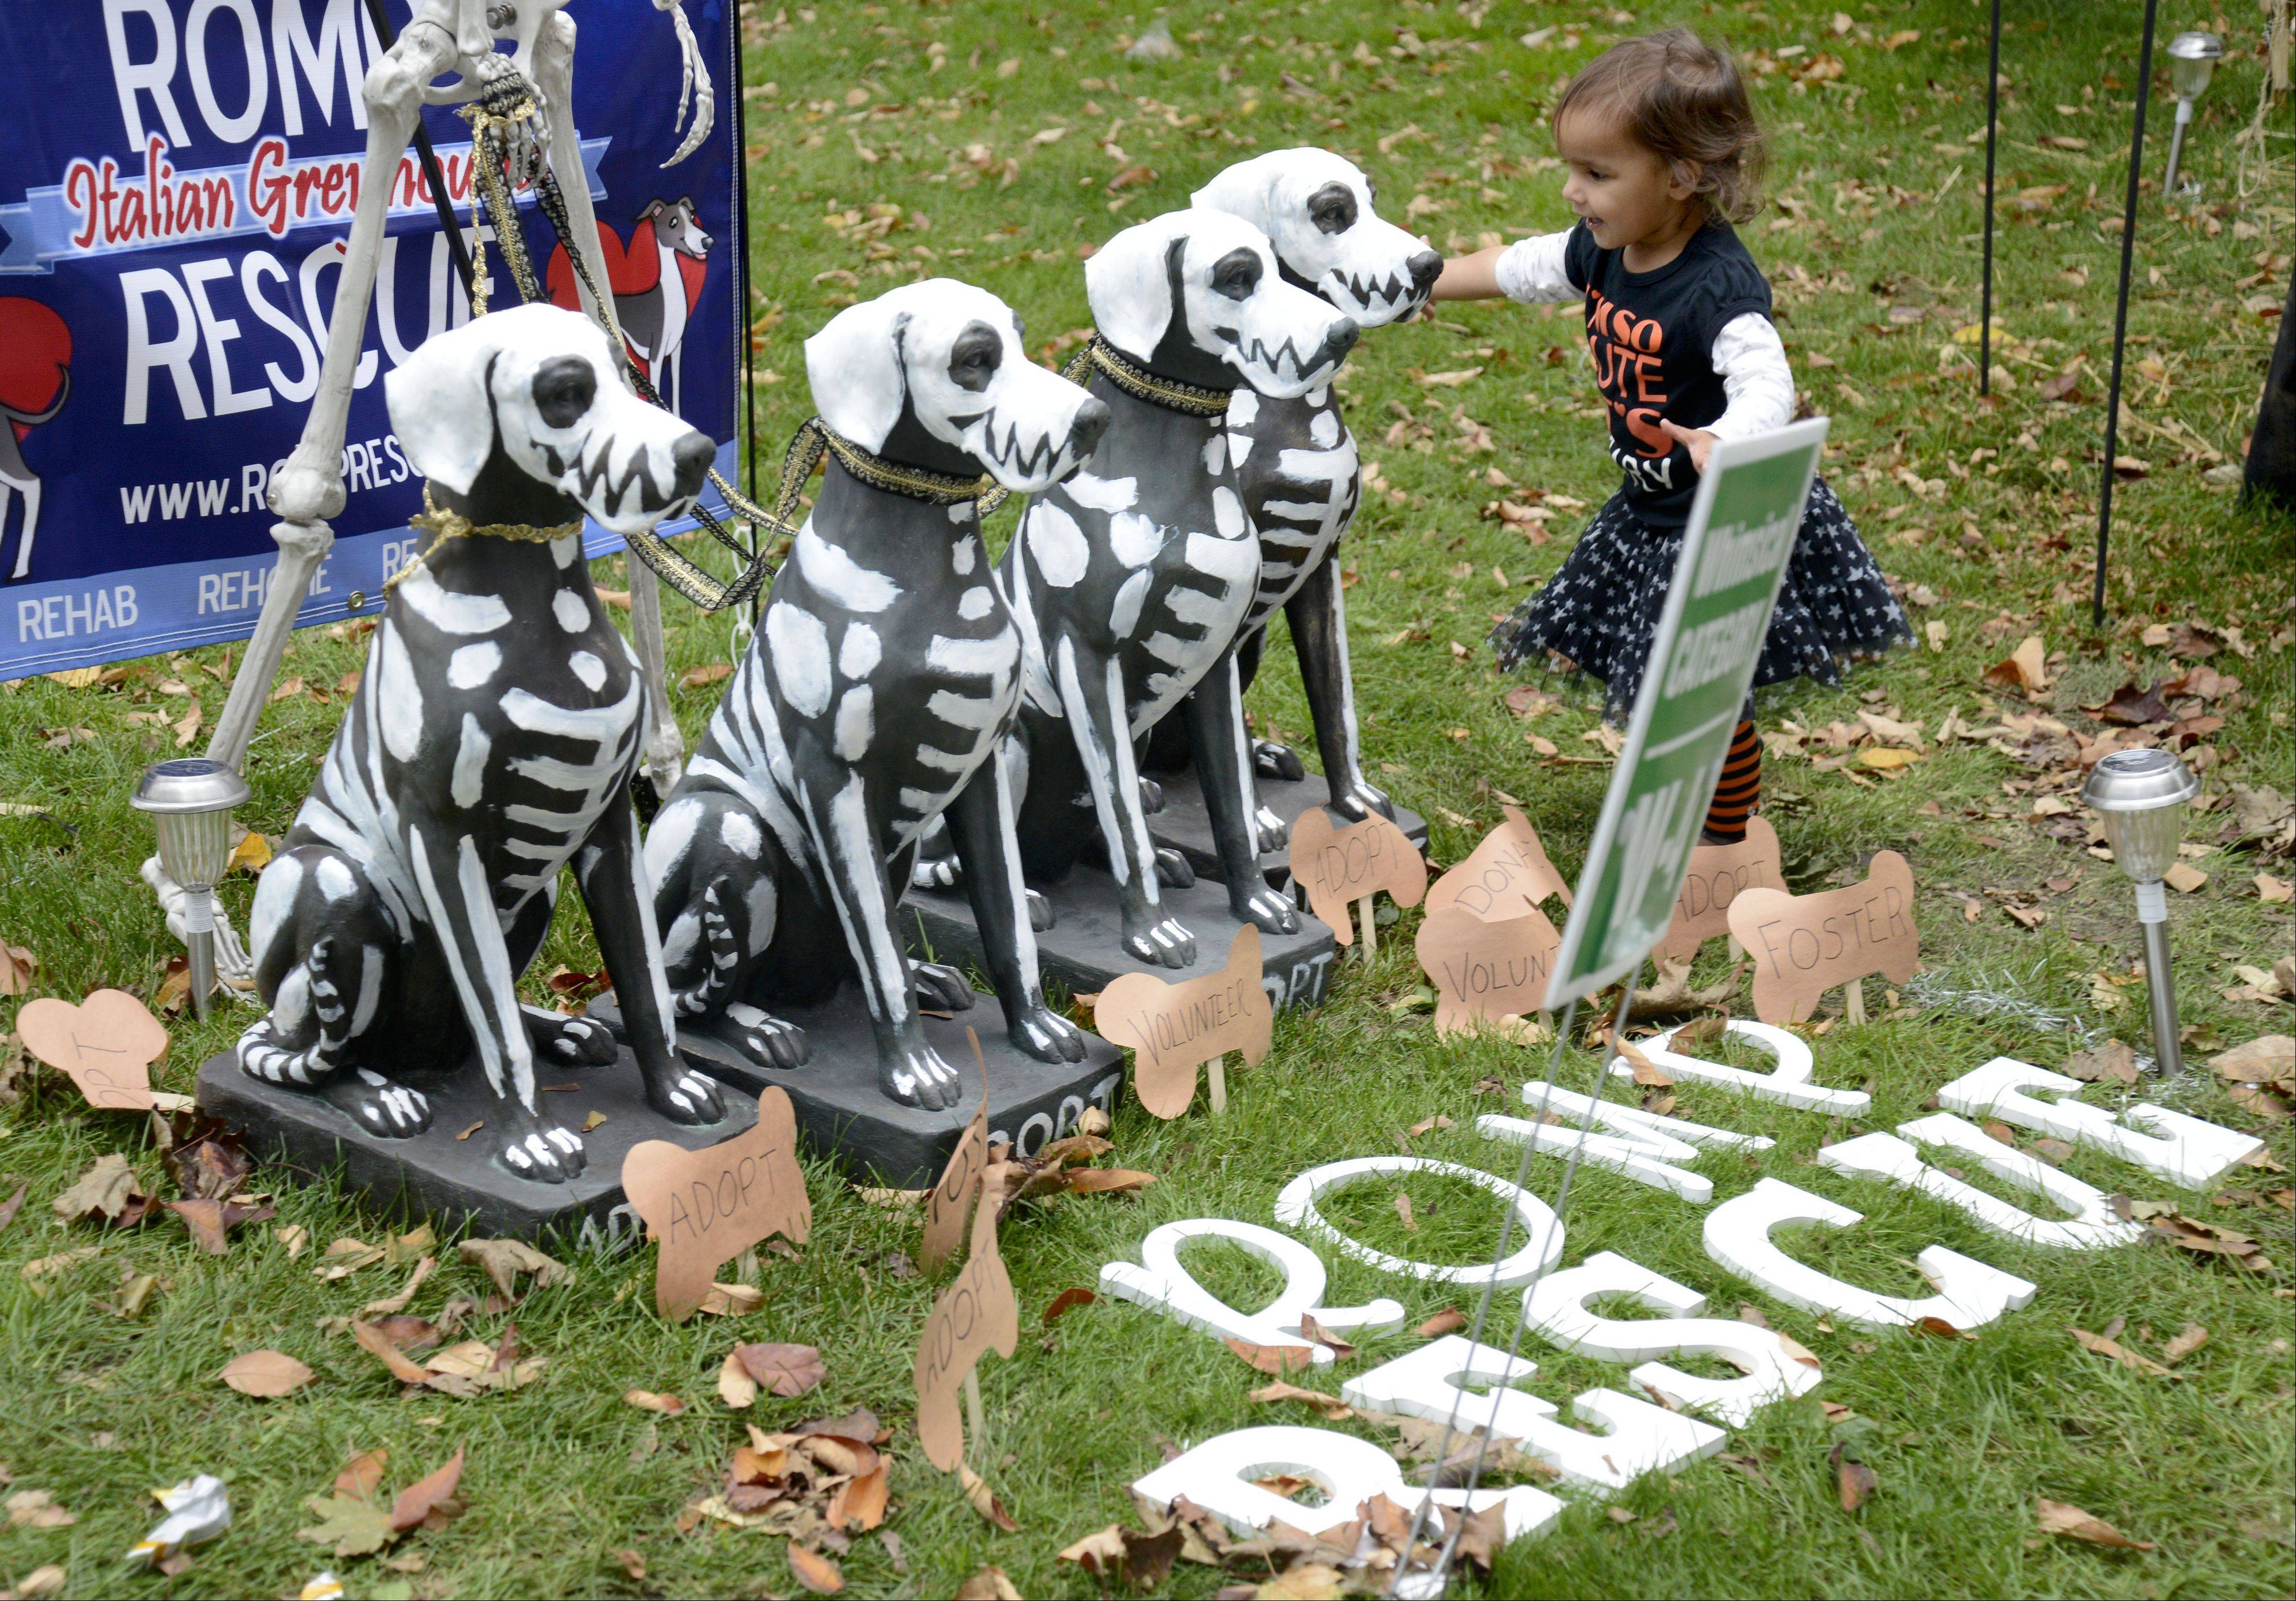 Sonali Singh, 2, of Lombard gets a closer look at the entry by ROMP Italian Greyhound Rescue of Chicago at the Scarecrow Fest in St. Charles' Lincoln Park on Saturday/ The Singh family comes to the event every few years.